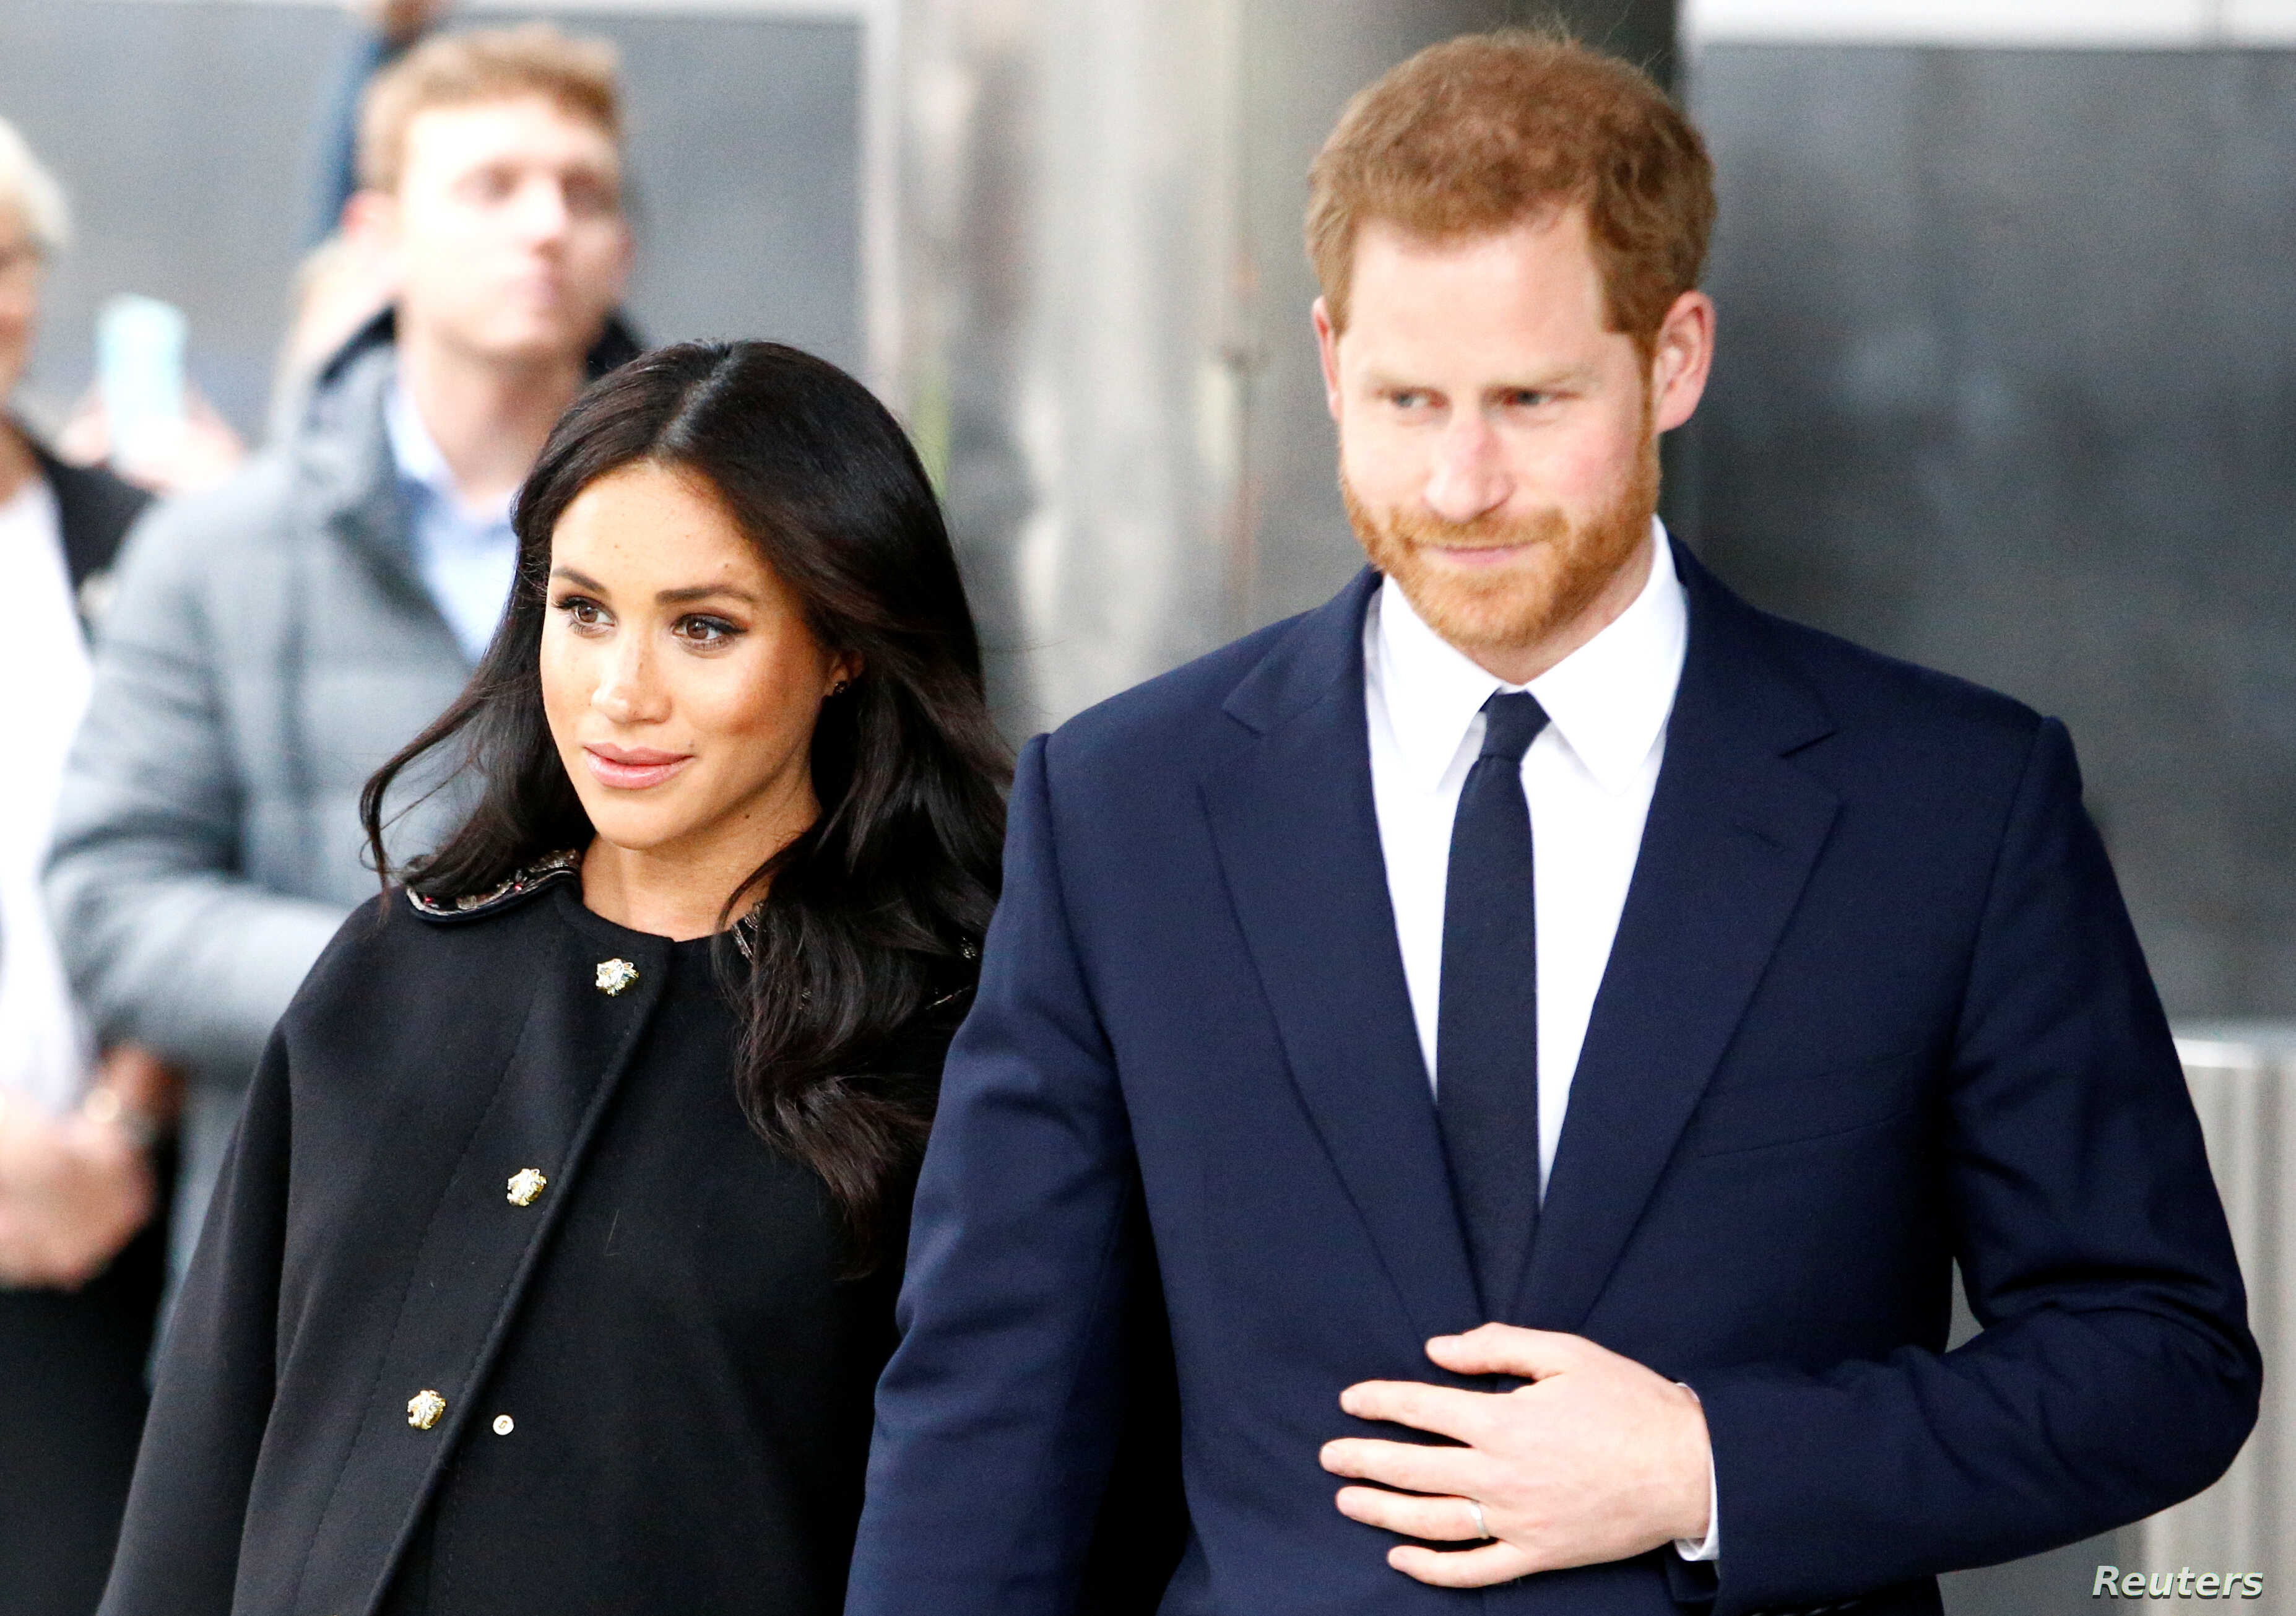 Meghan Markle Prince Harry S Wife In Labor Voice Of America English,Best Way To Light A Room